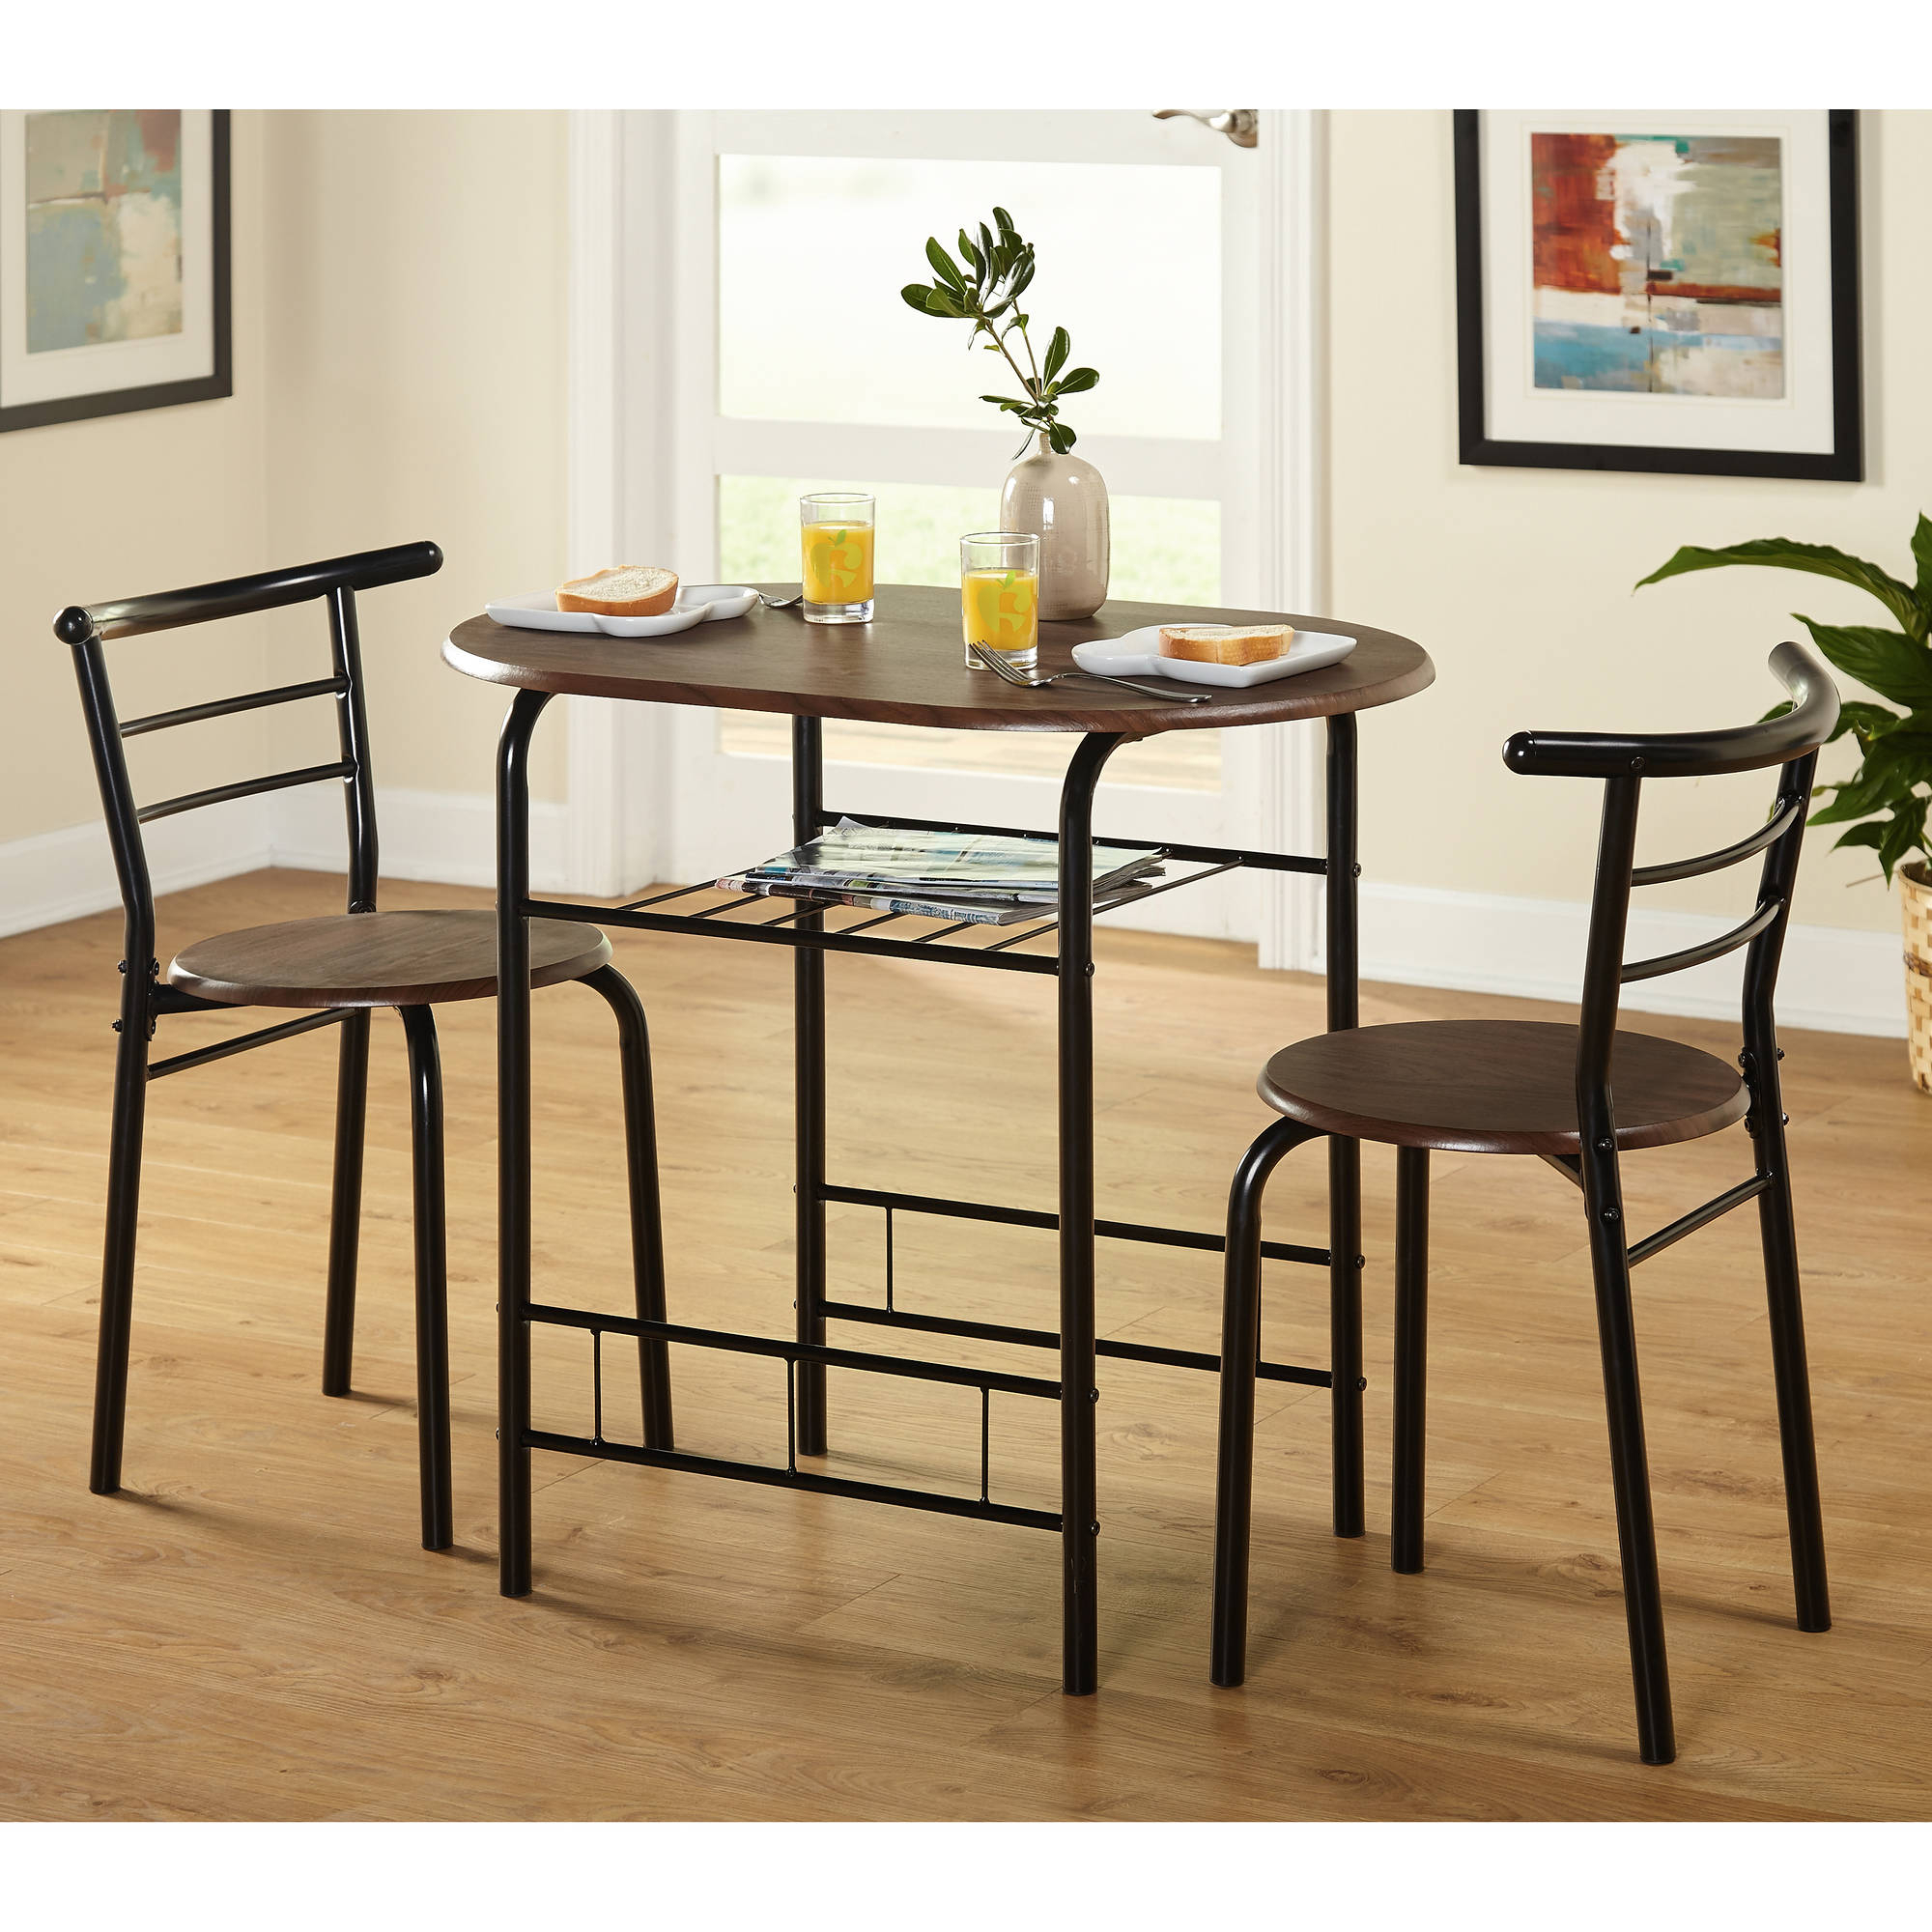 Details About Tms 3 Piece Bistro Dining Set Inside Most Current 3 Pieces Dining Tables And Chair Set (View 3 of 30)